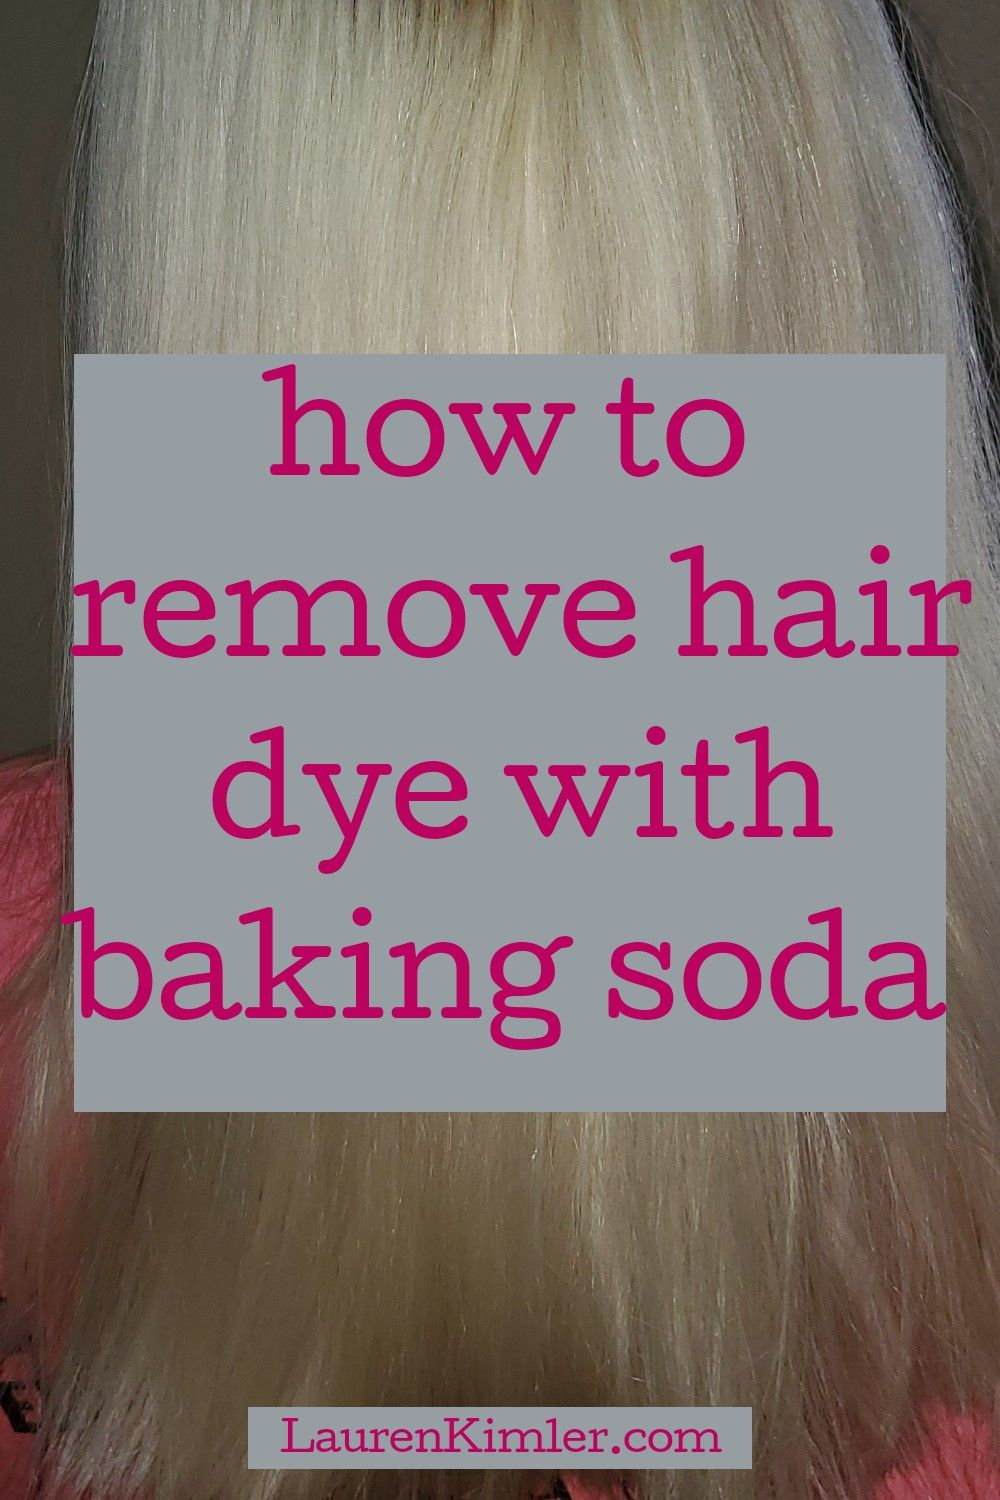 How To Remove Hair Dye With Baking Soda In 2020 Hair Dye Removal Hair Color Remover Diy Hair Color Remover